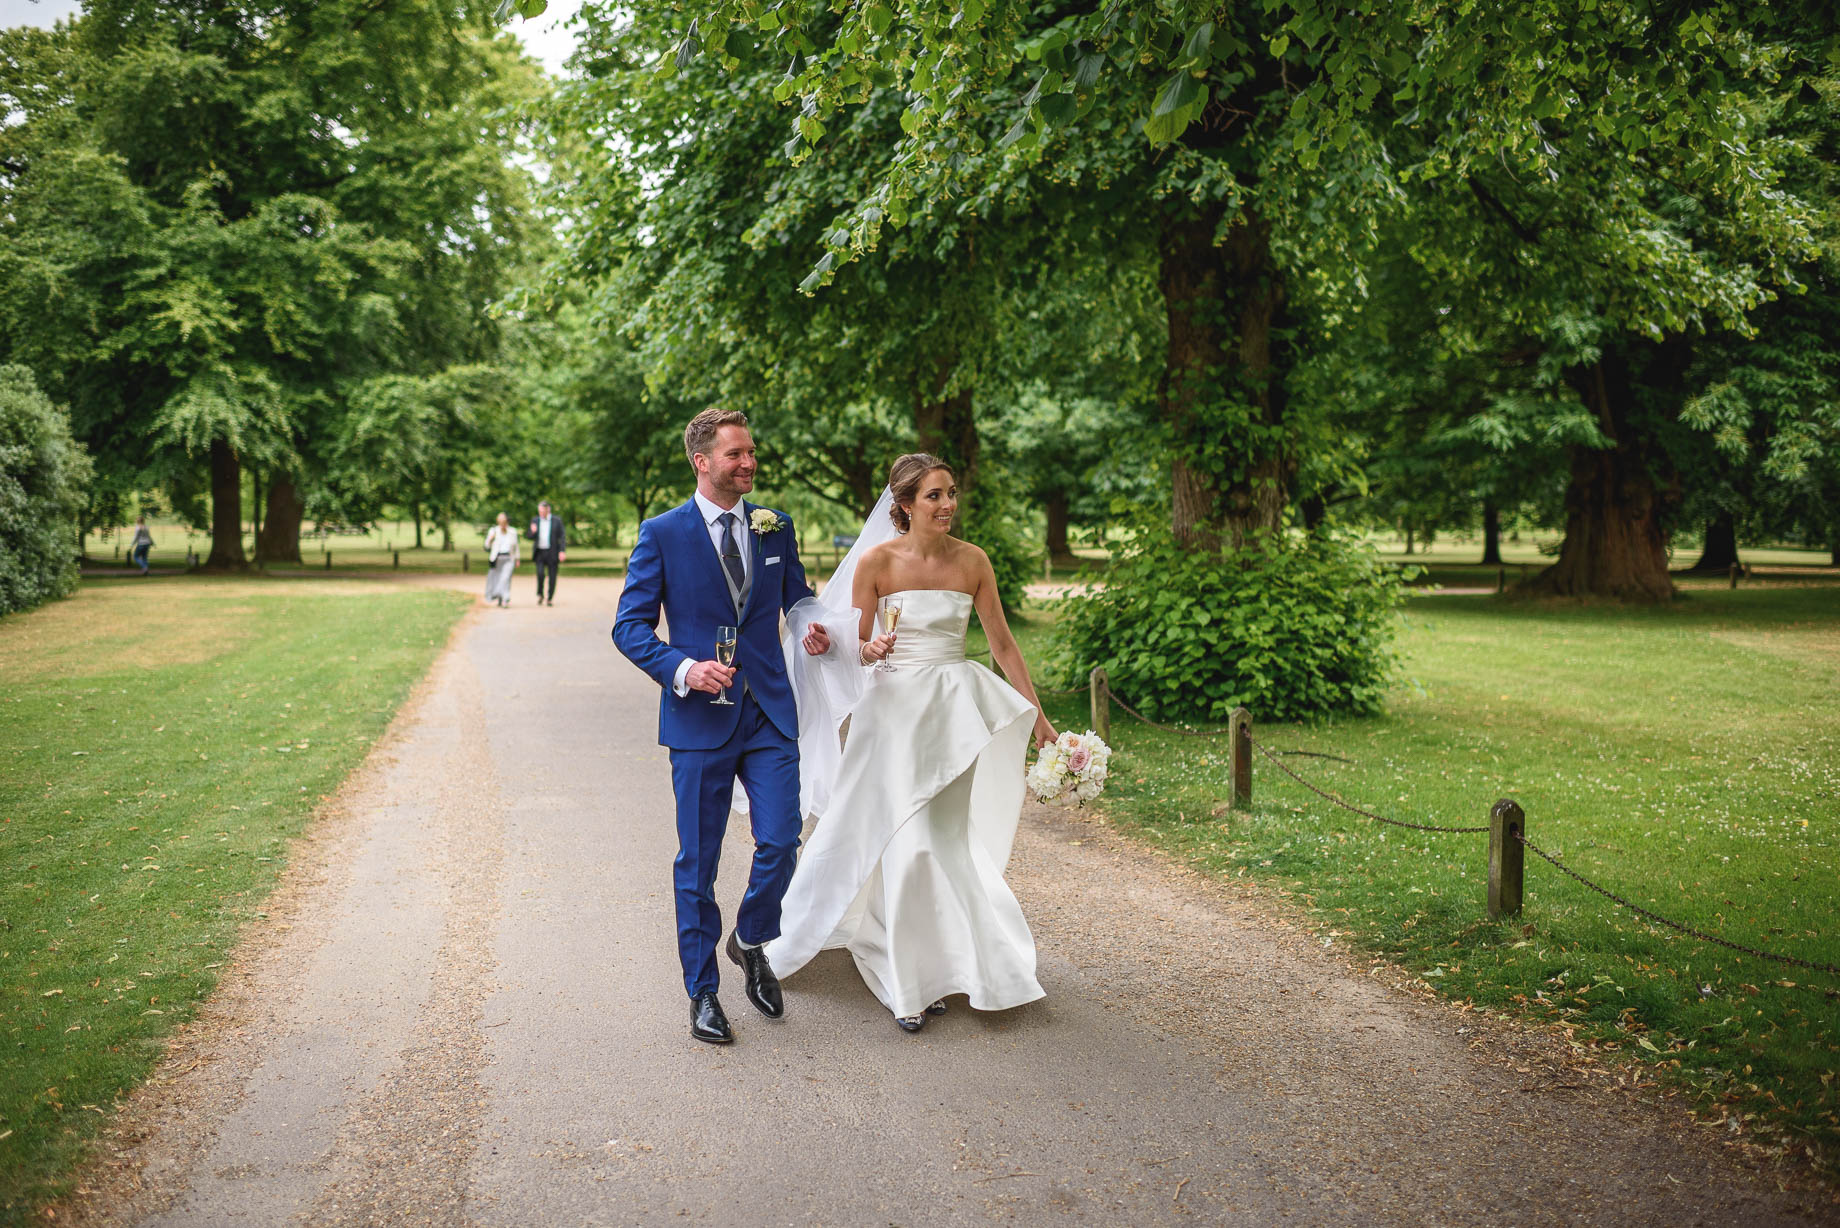 Surrey wedding photography - Laura and Alex